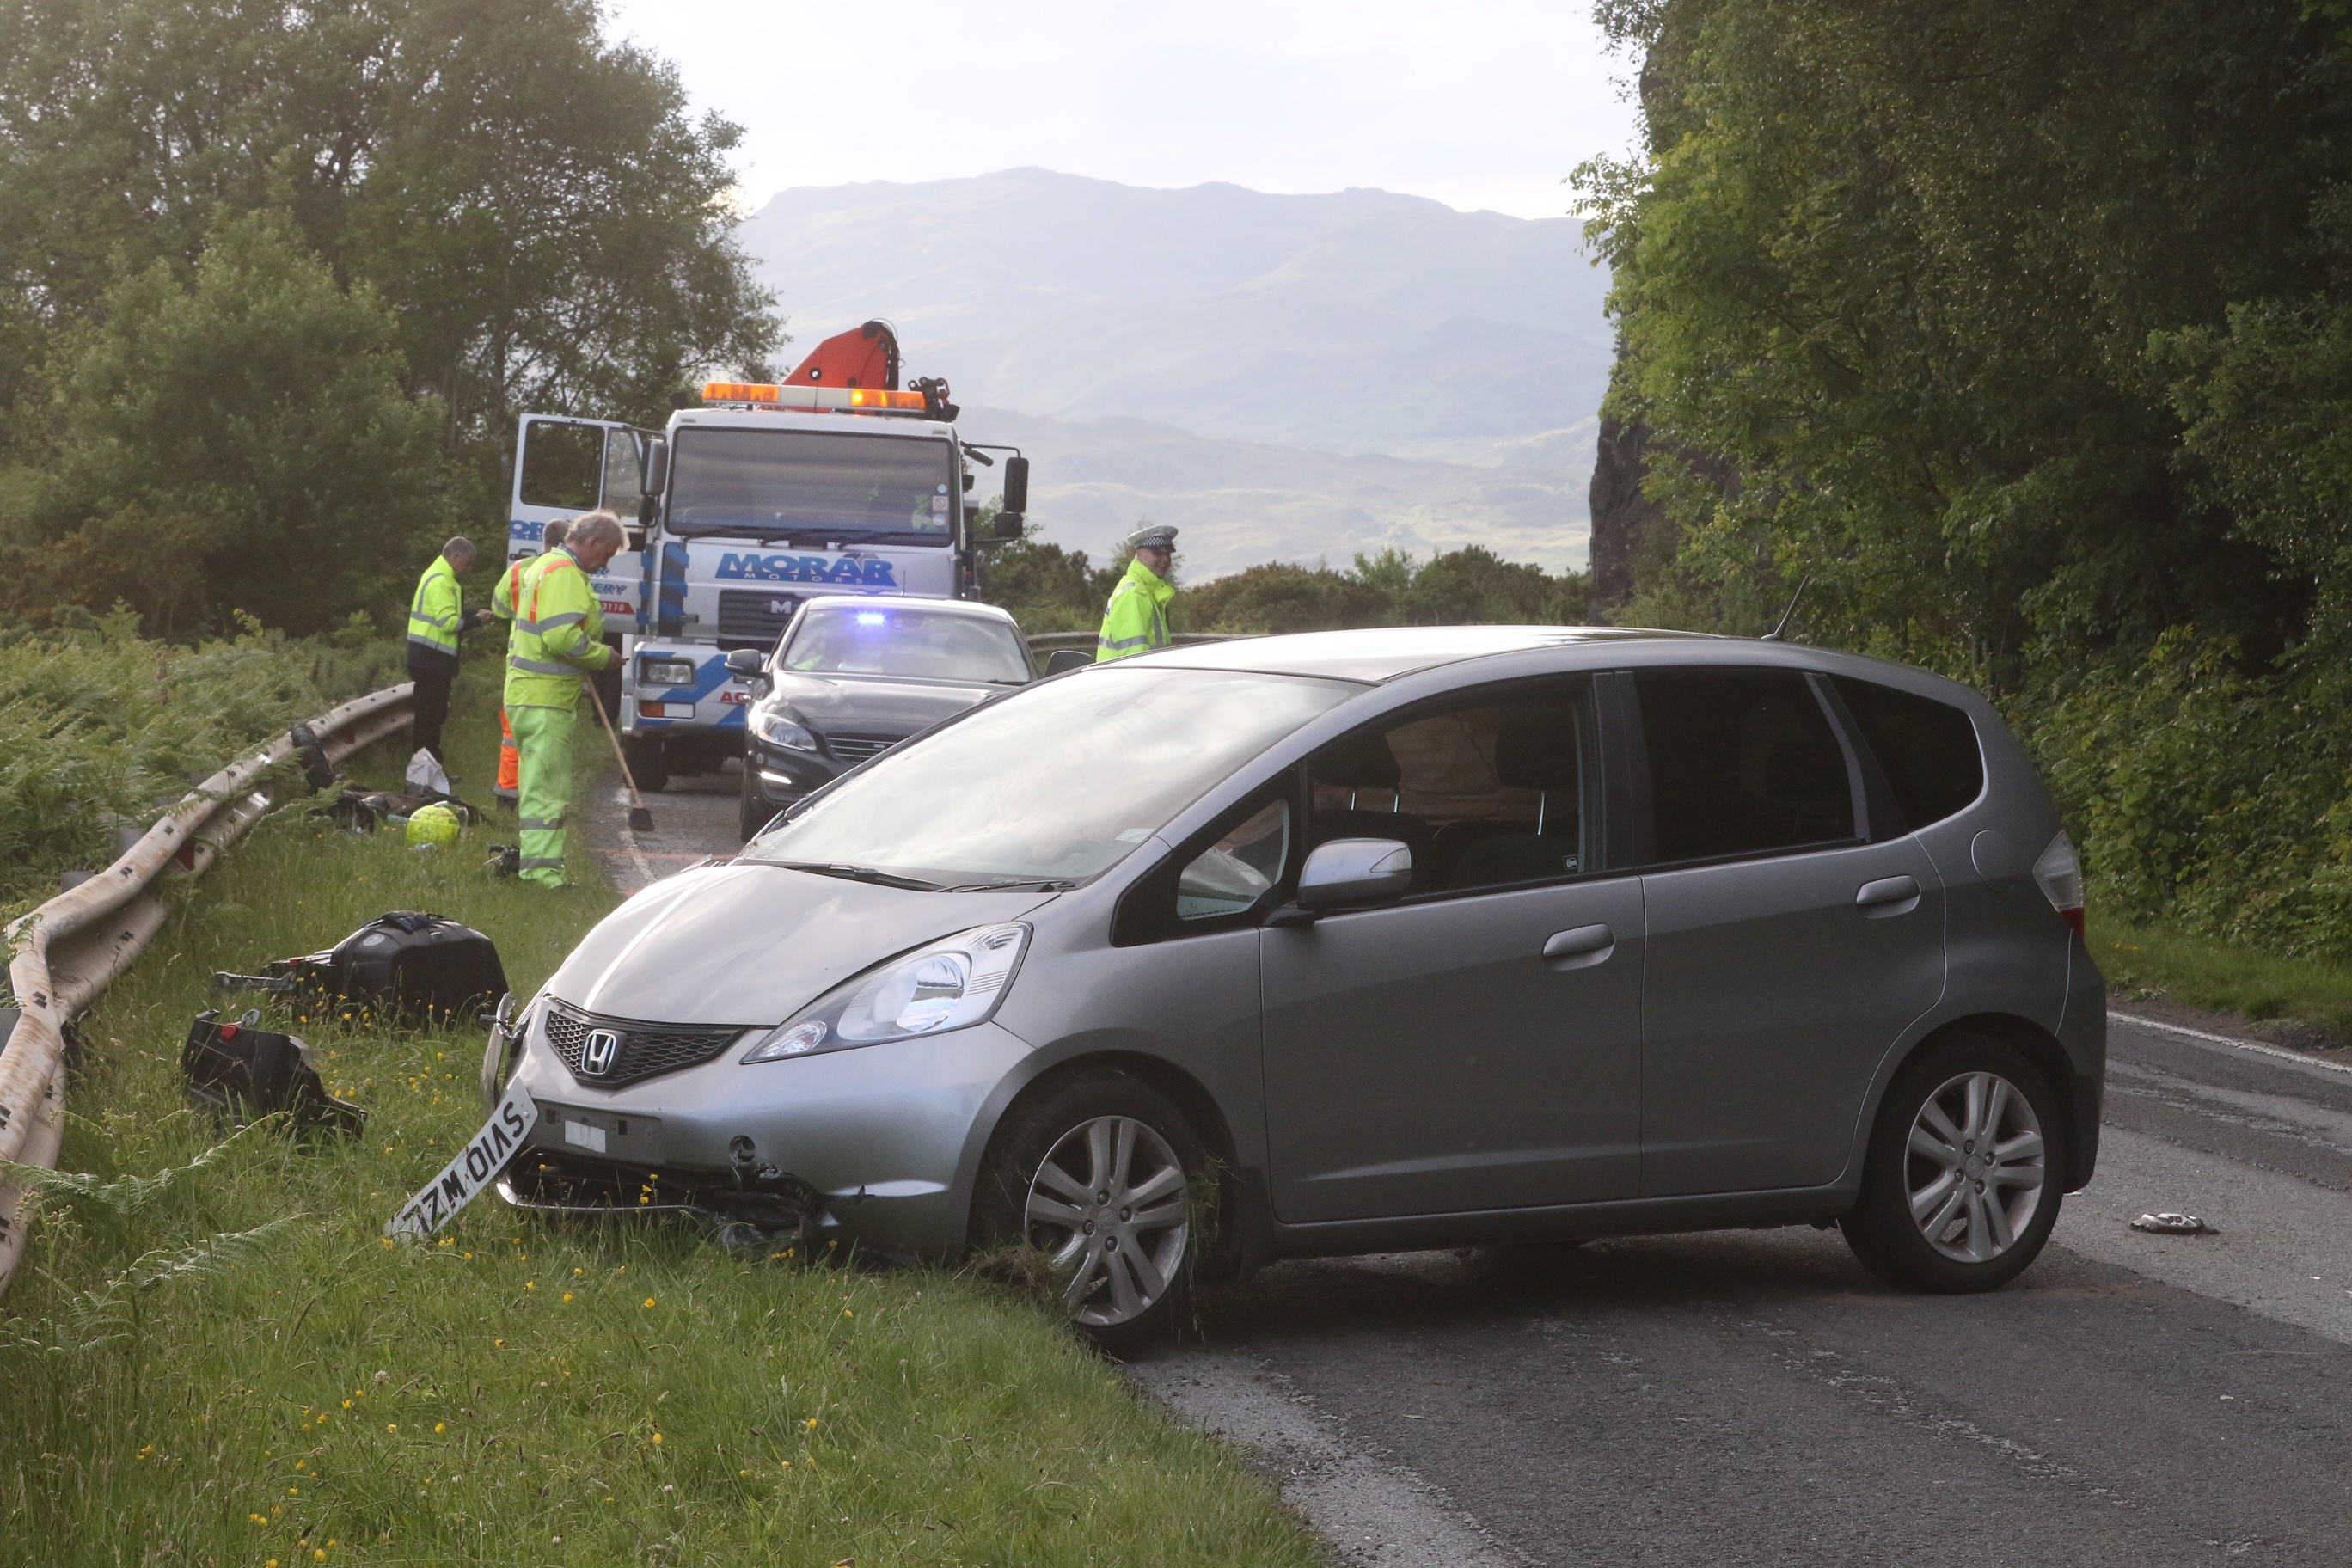 The scene of the accident on the A87